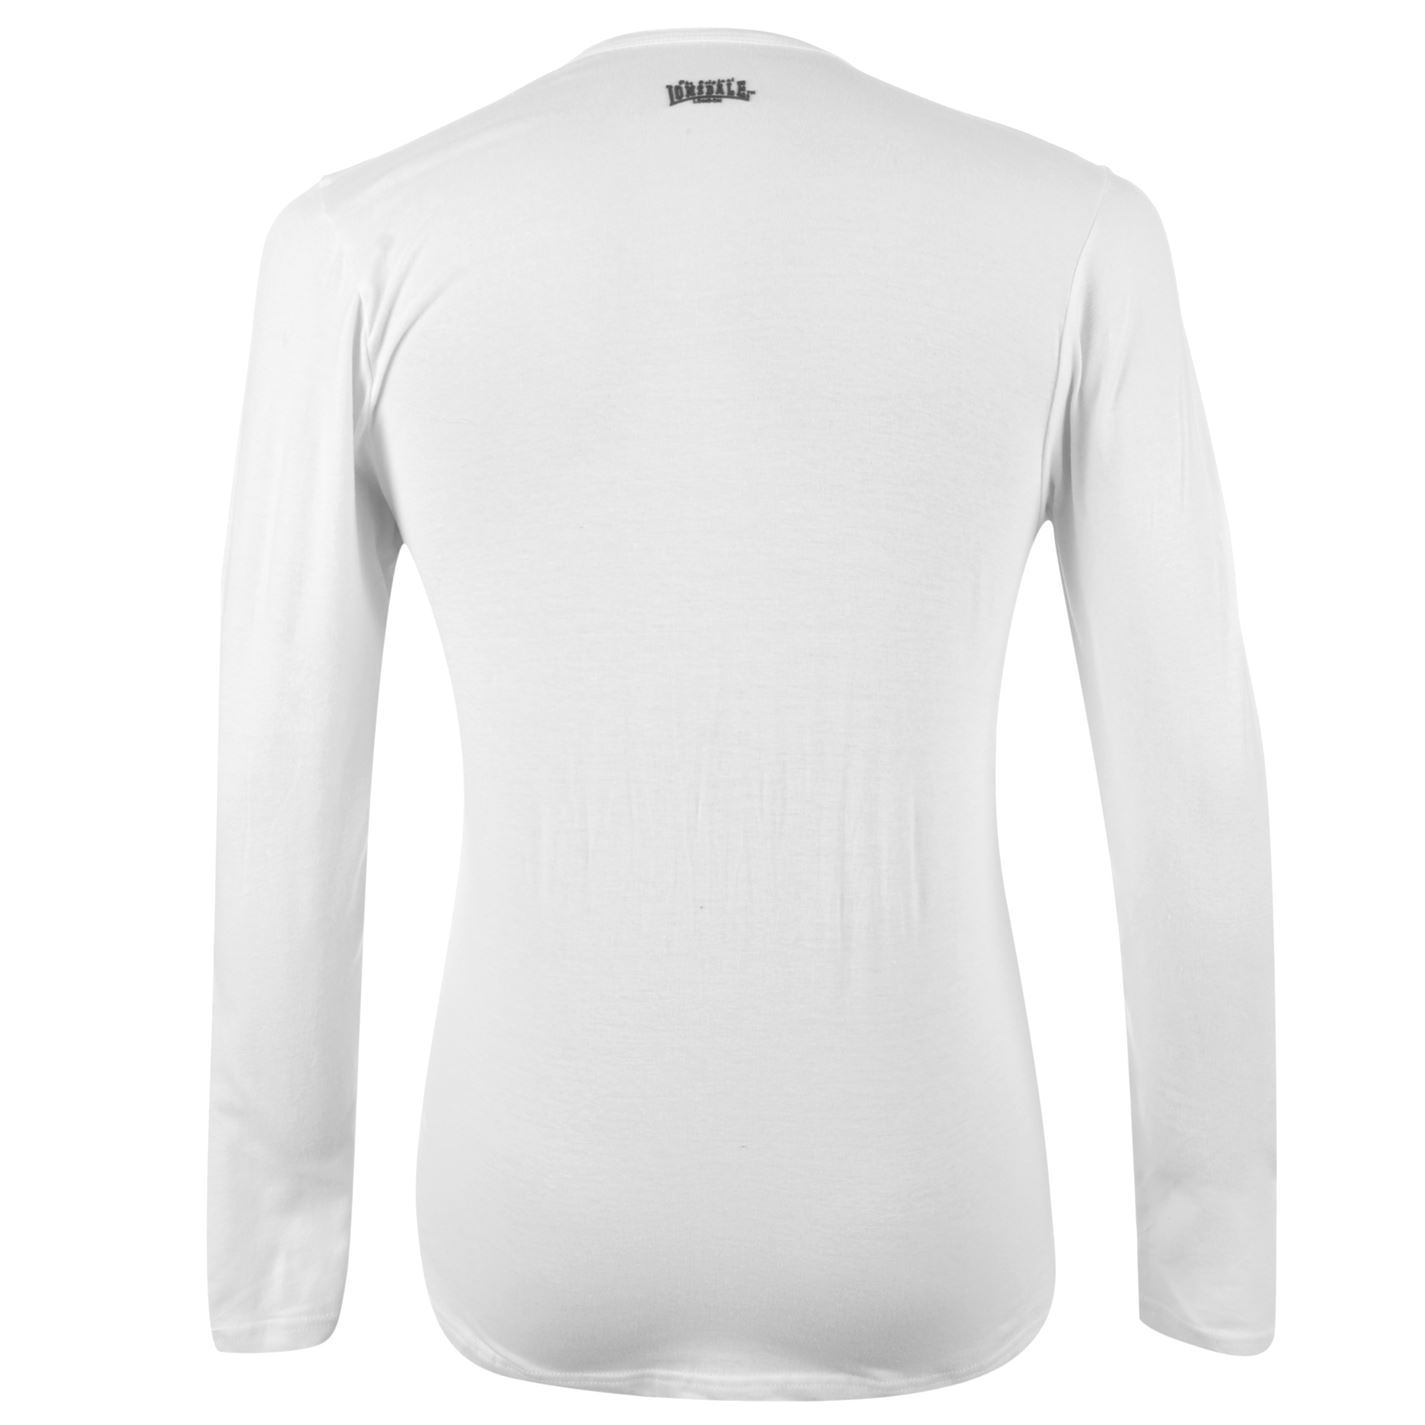 a6a86cc54ee Lonsdale Long Sleeve T Shirt Mens White Top Tee Tshirt